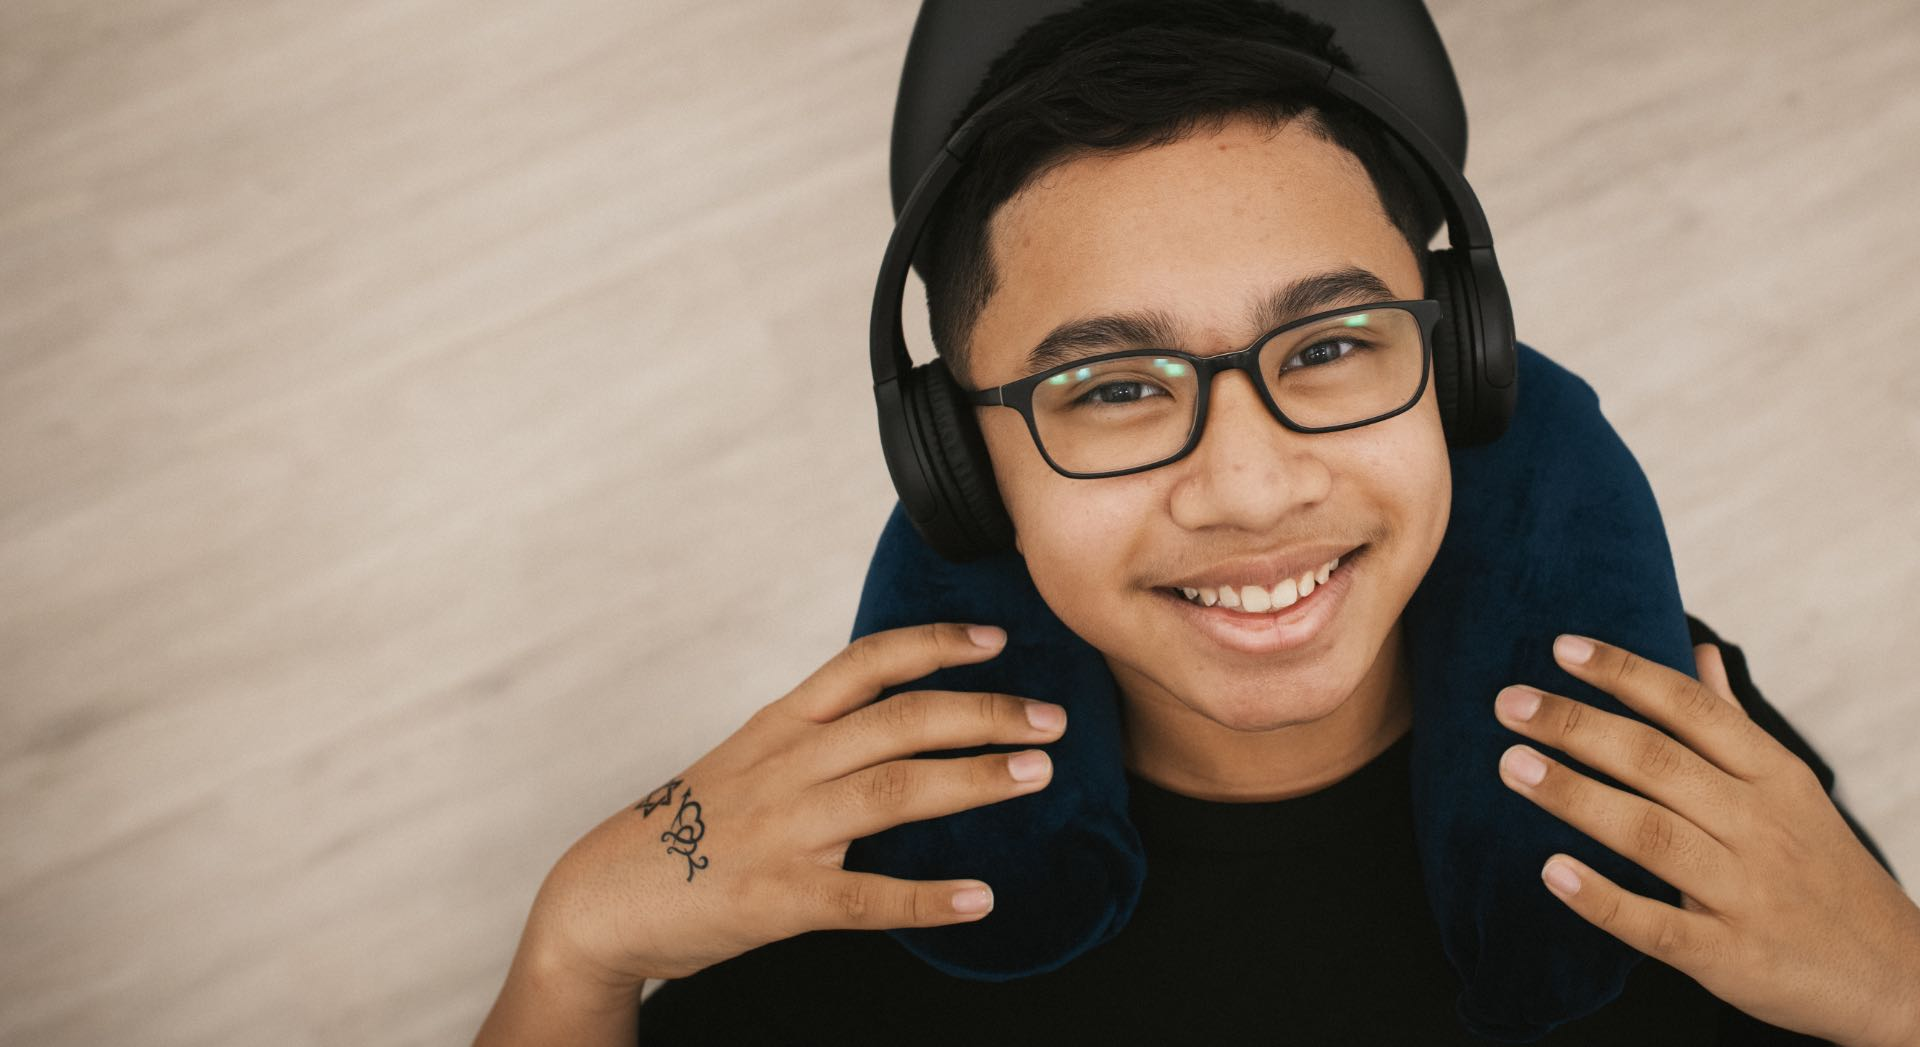 Photo of a patient smiling with headphones on